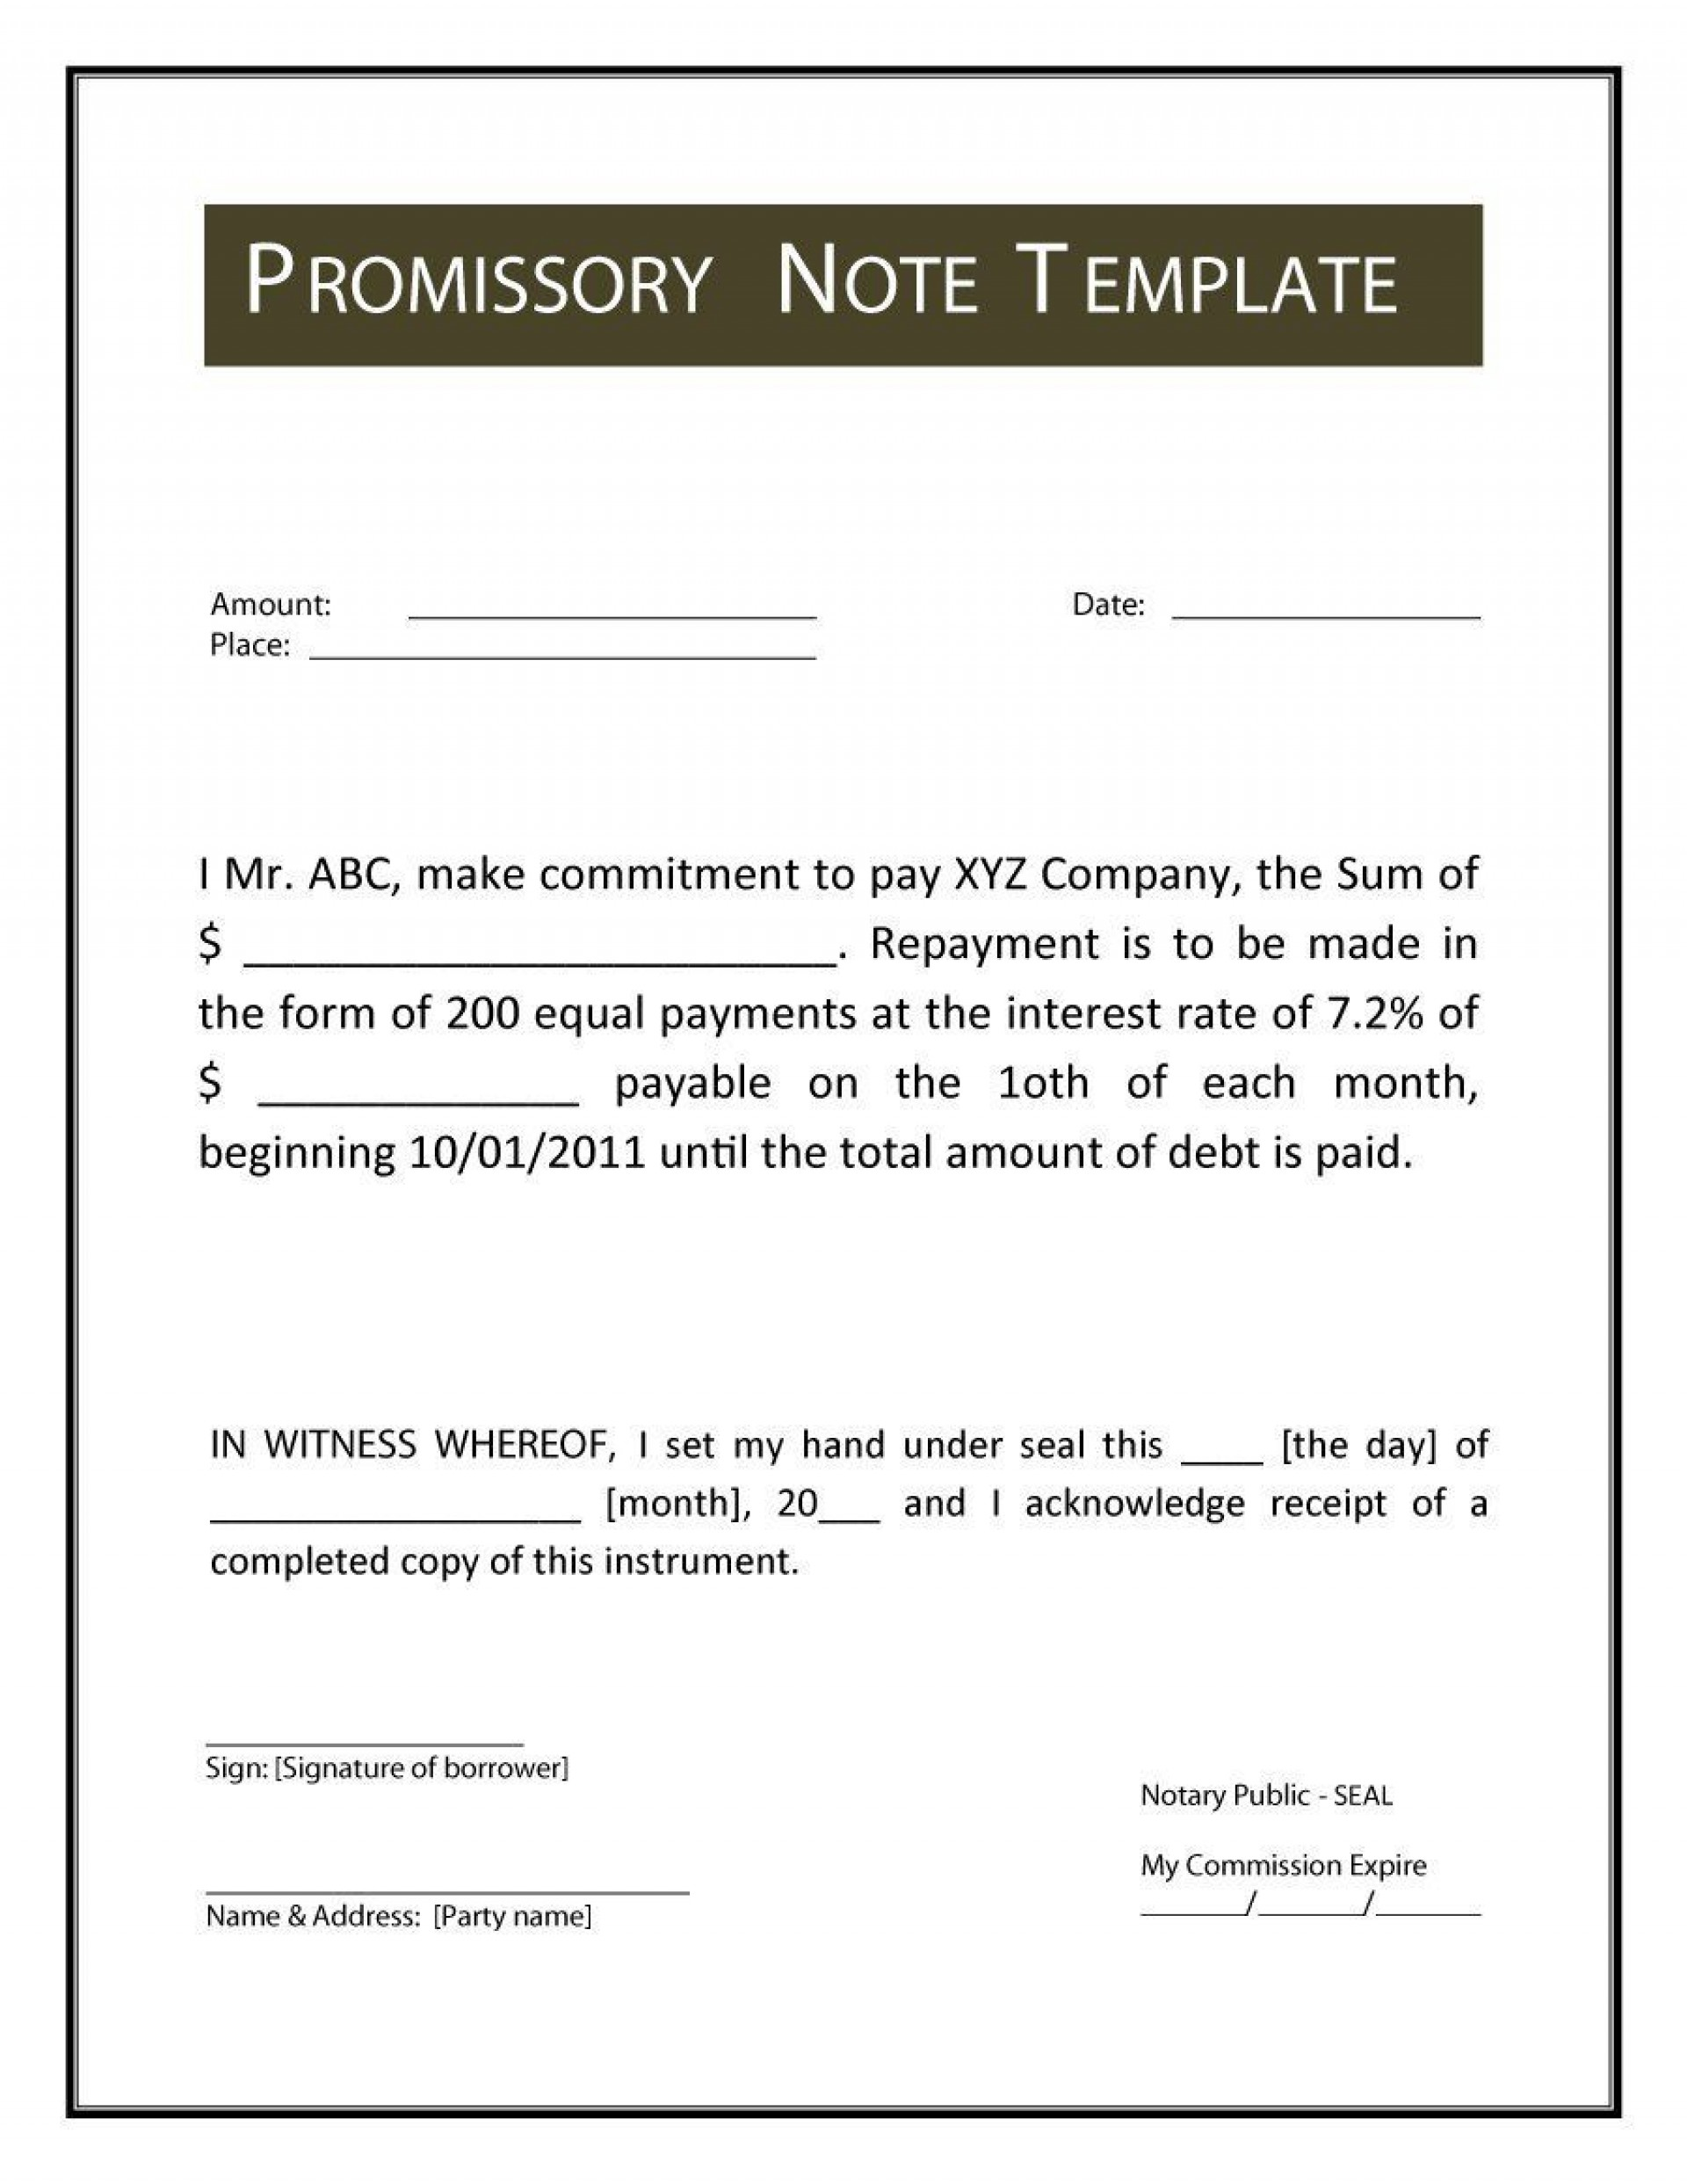 000 Breathtaking Free Promissory Note Template Word Image  Microsoft Document1920